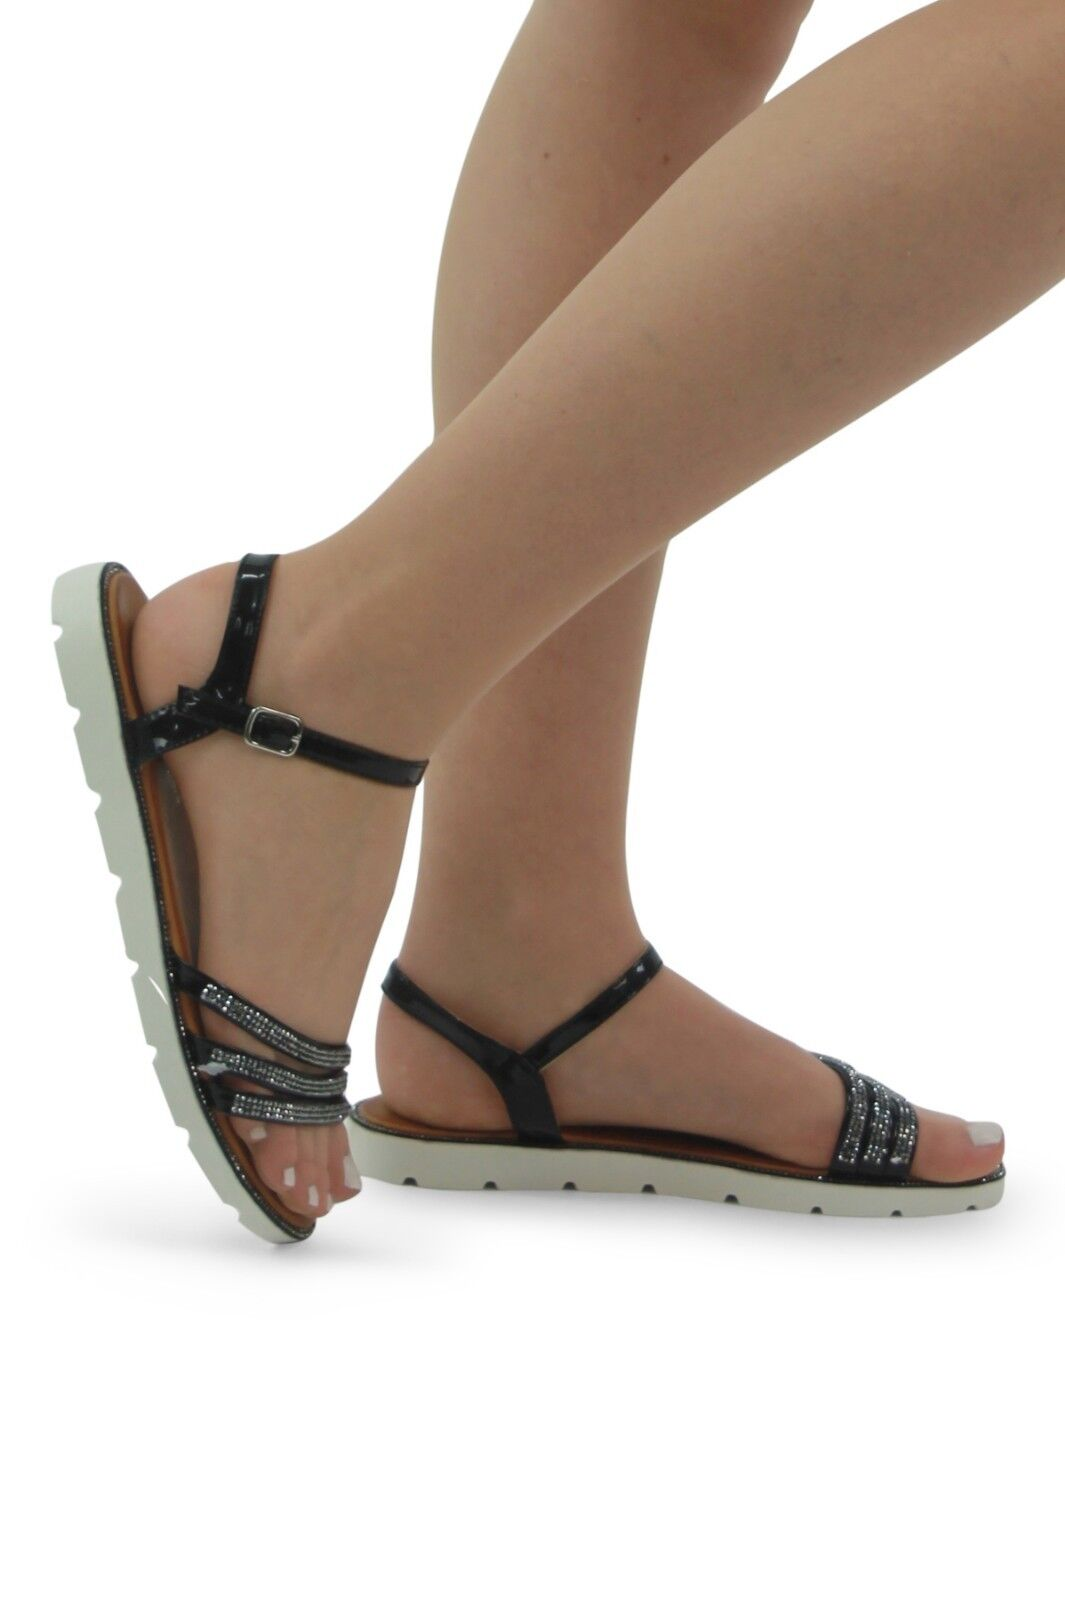 Ladies sole Women's Girls Flat Cleated sole Ladies strap sandals Ankle Strap Diamante Shoes e41246